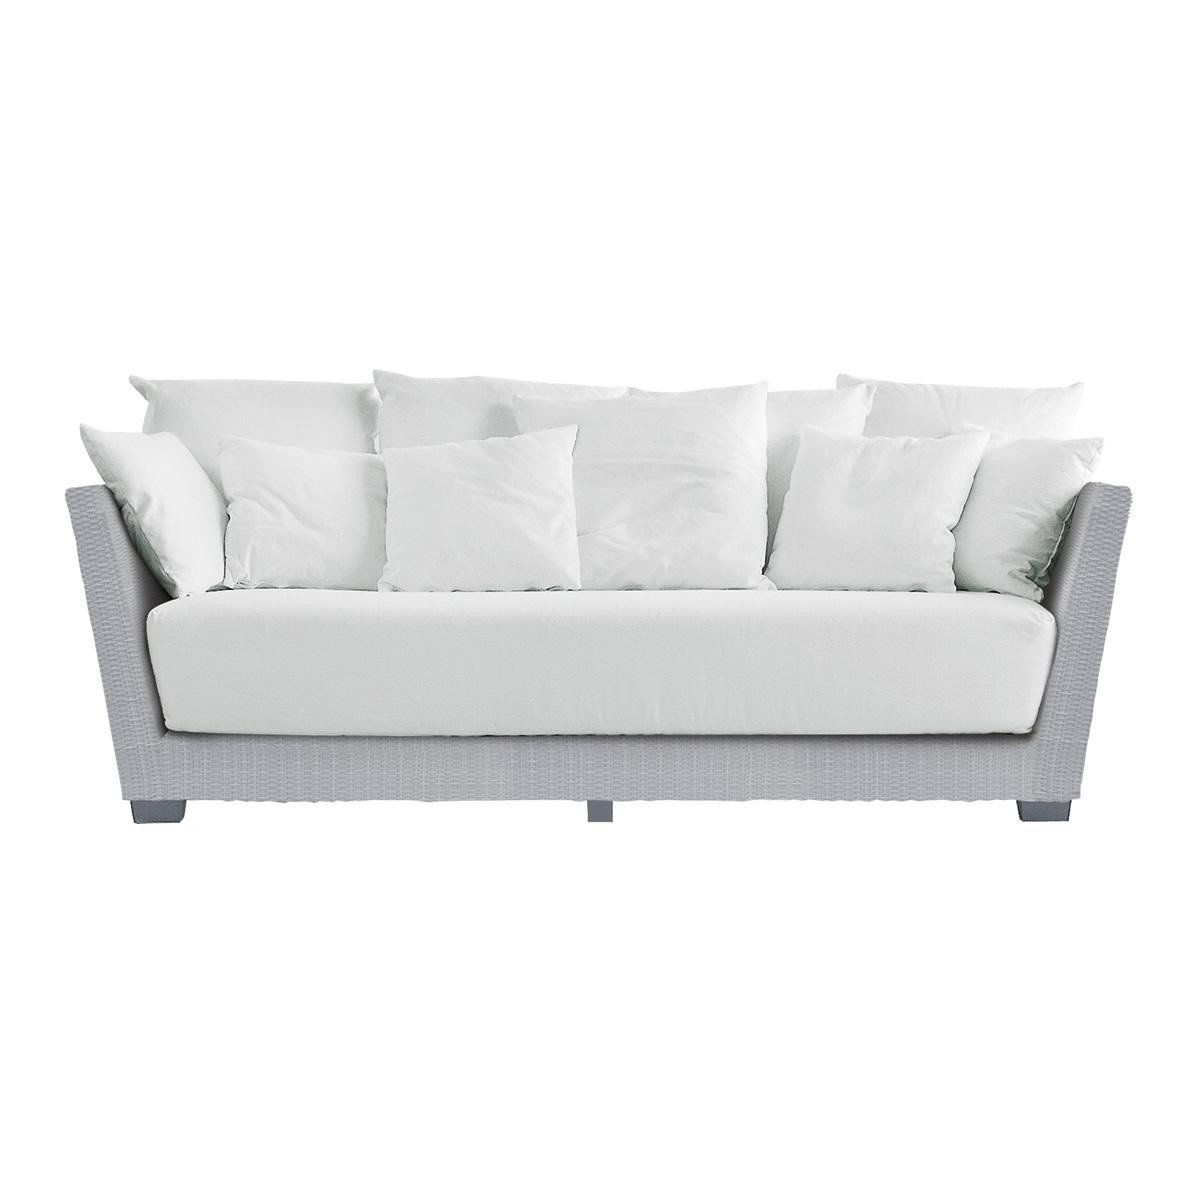 polyrattan sofa top er sofa aus polyrattan with. Black Bedroom Furniture Sets. Home Design Ideas